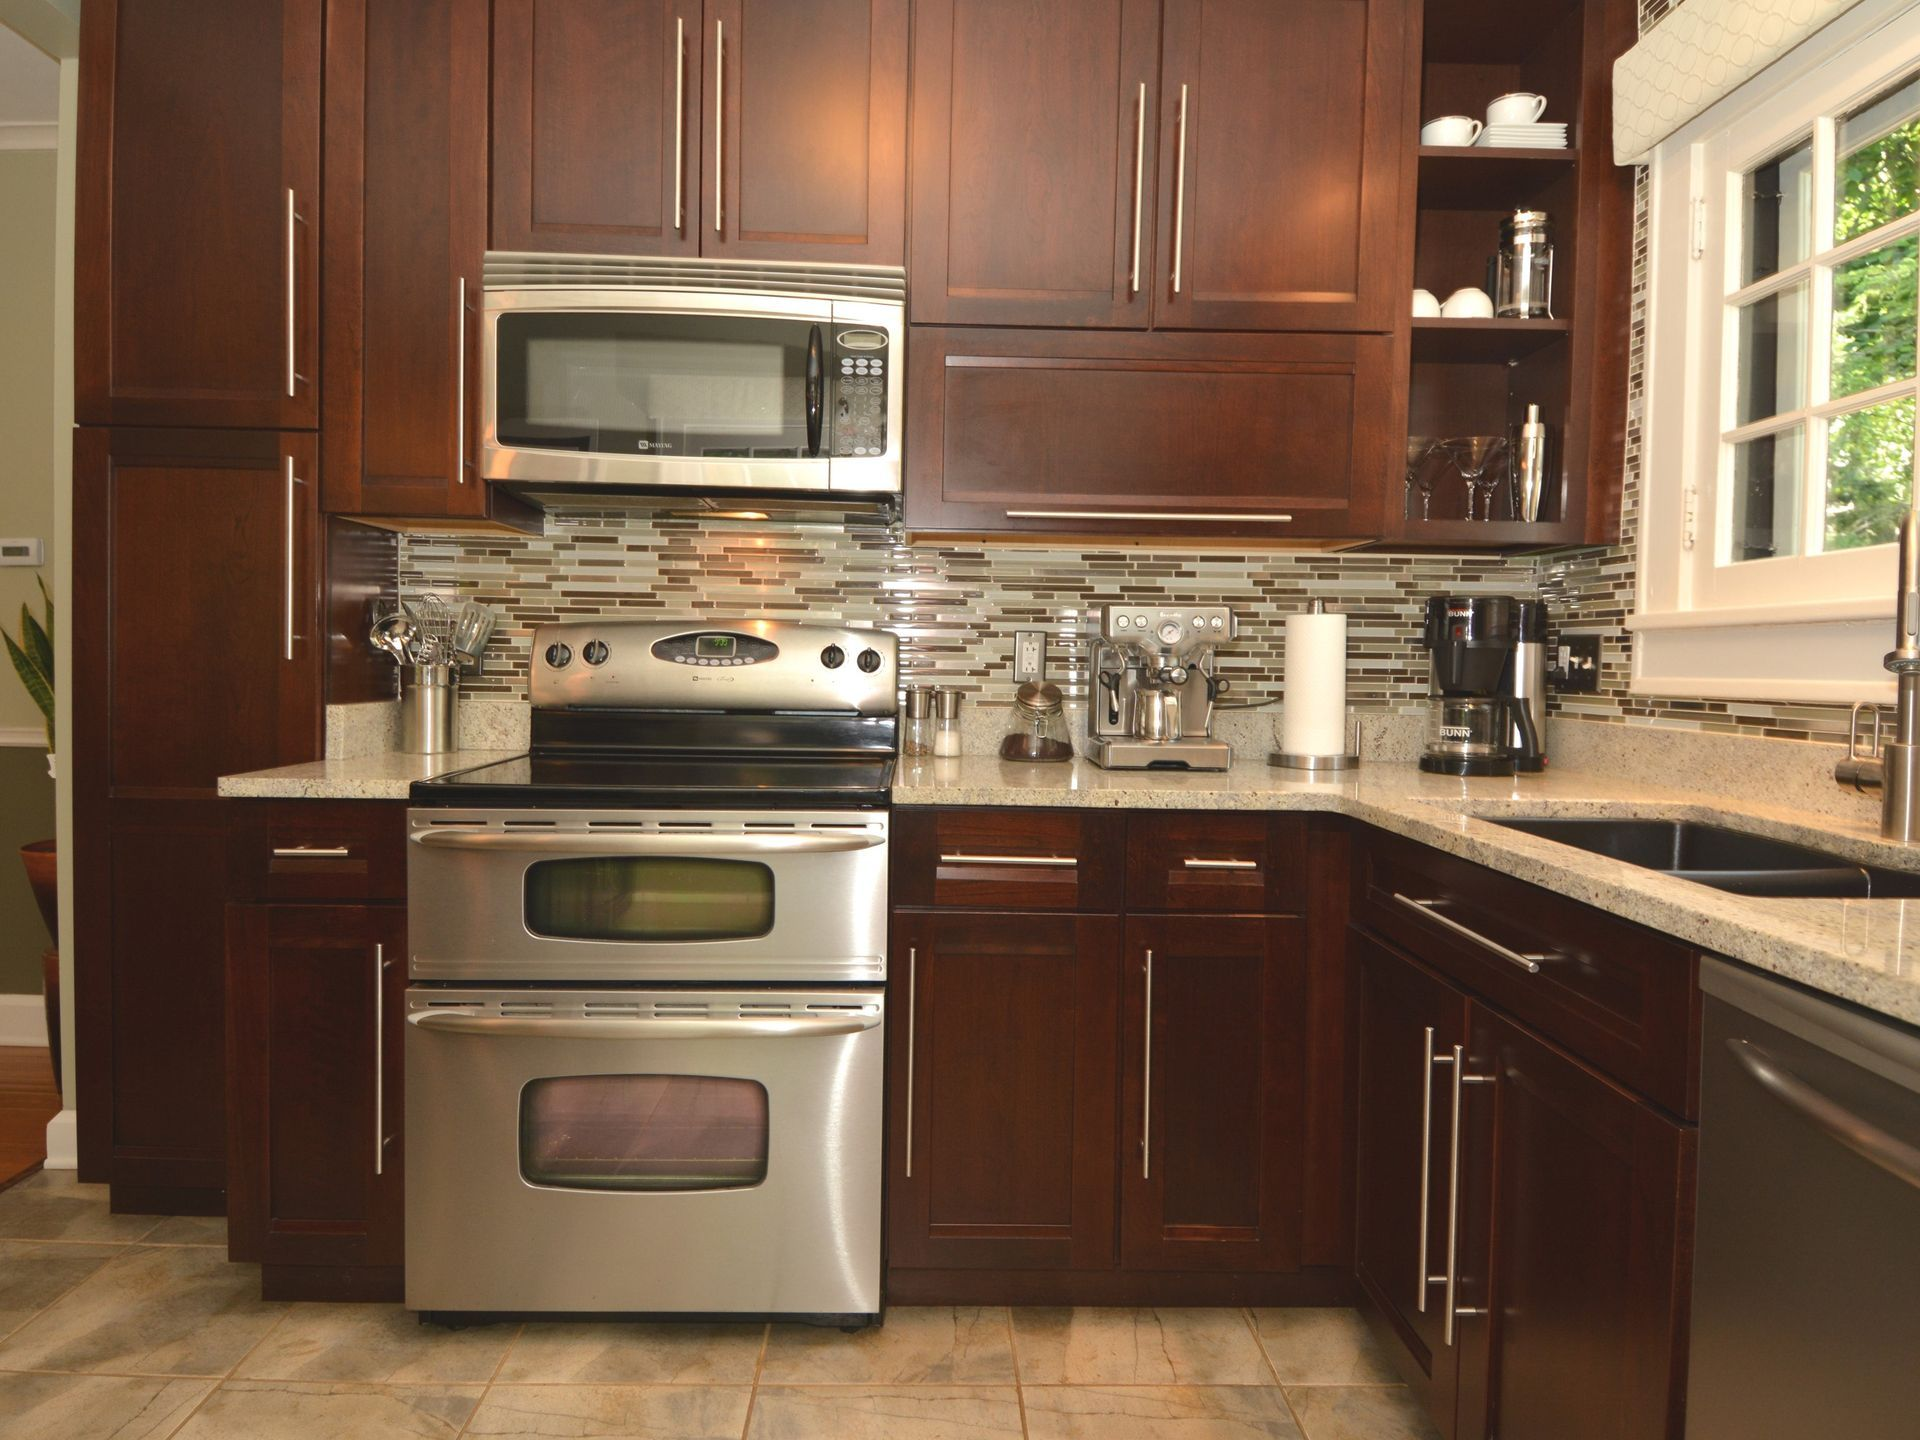 The kitchen has been pleted remodeled with cherry cabinets